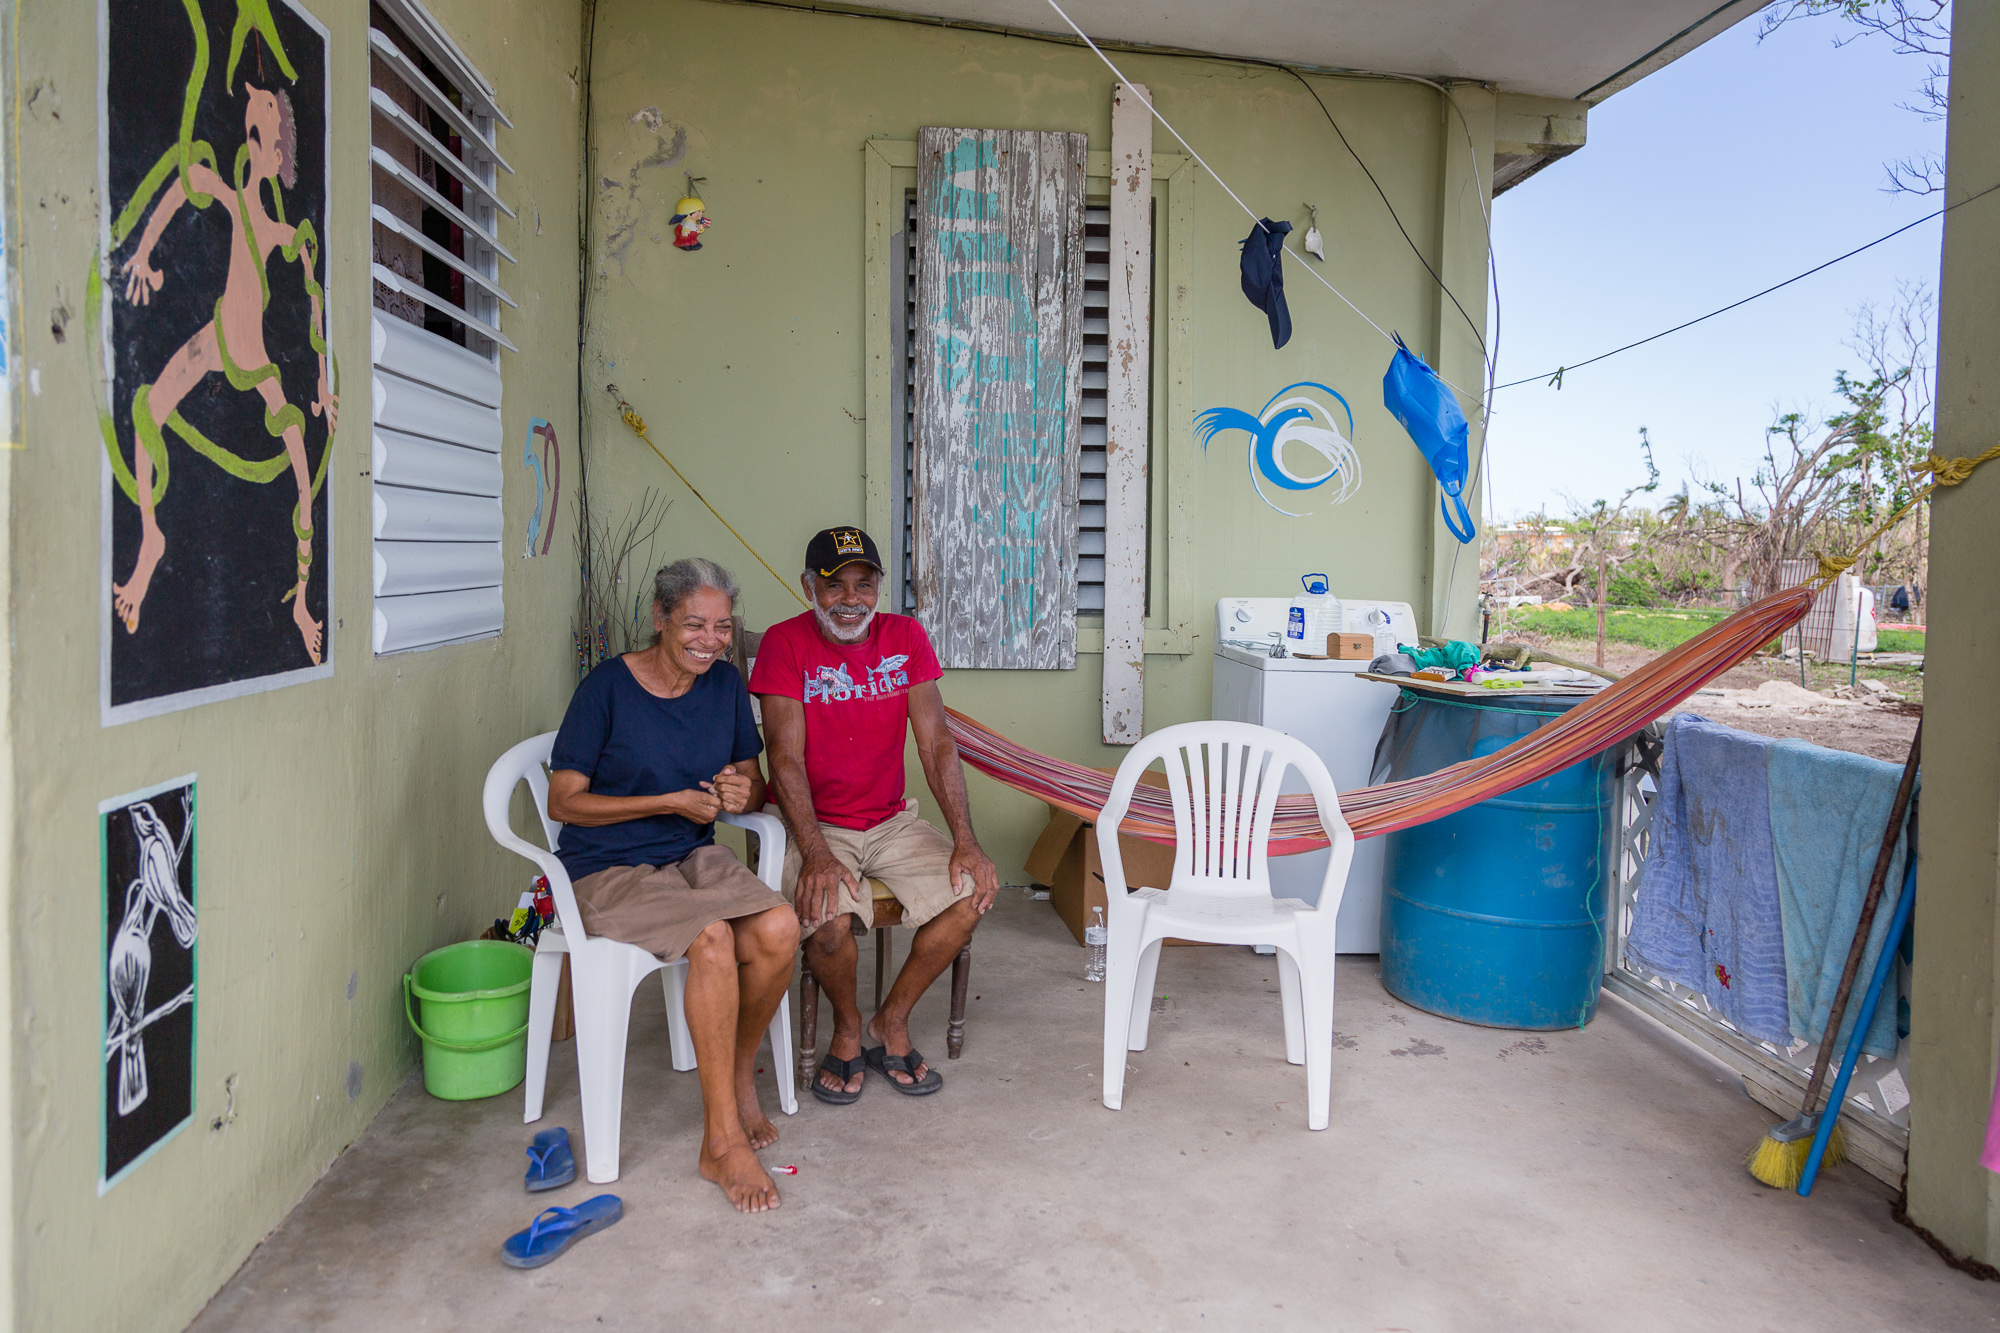 An artist and his wife rode out the storm at their waterfront home with the waves crashing at their door. Vieques, Puerto Rico.